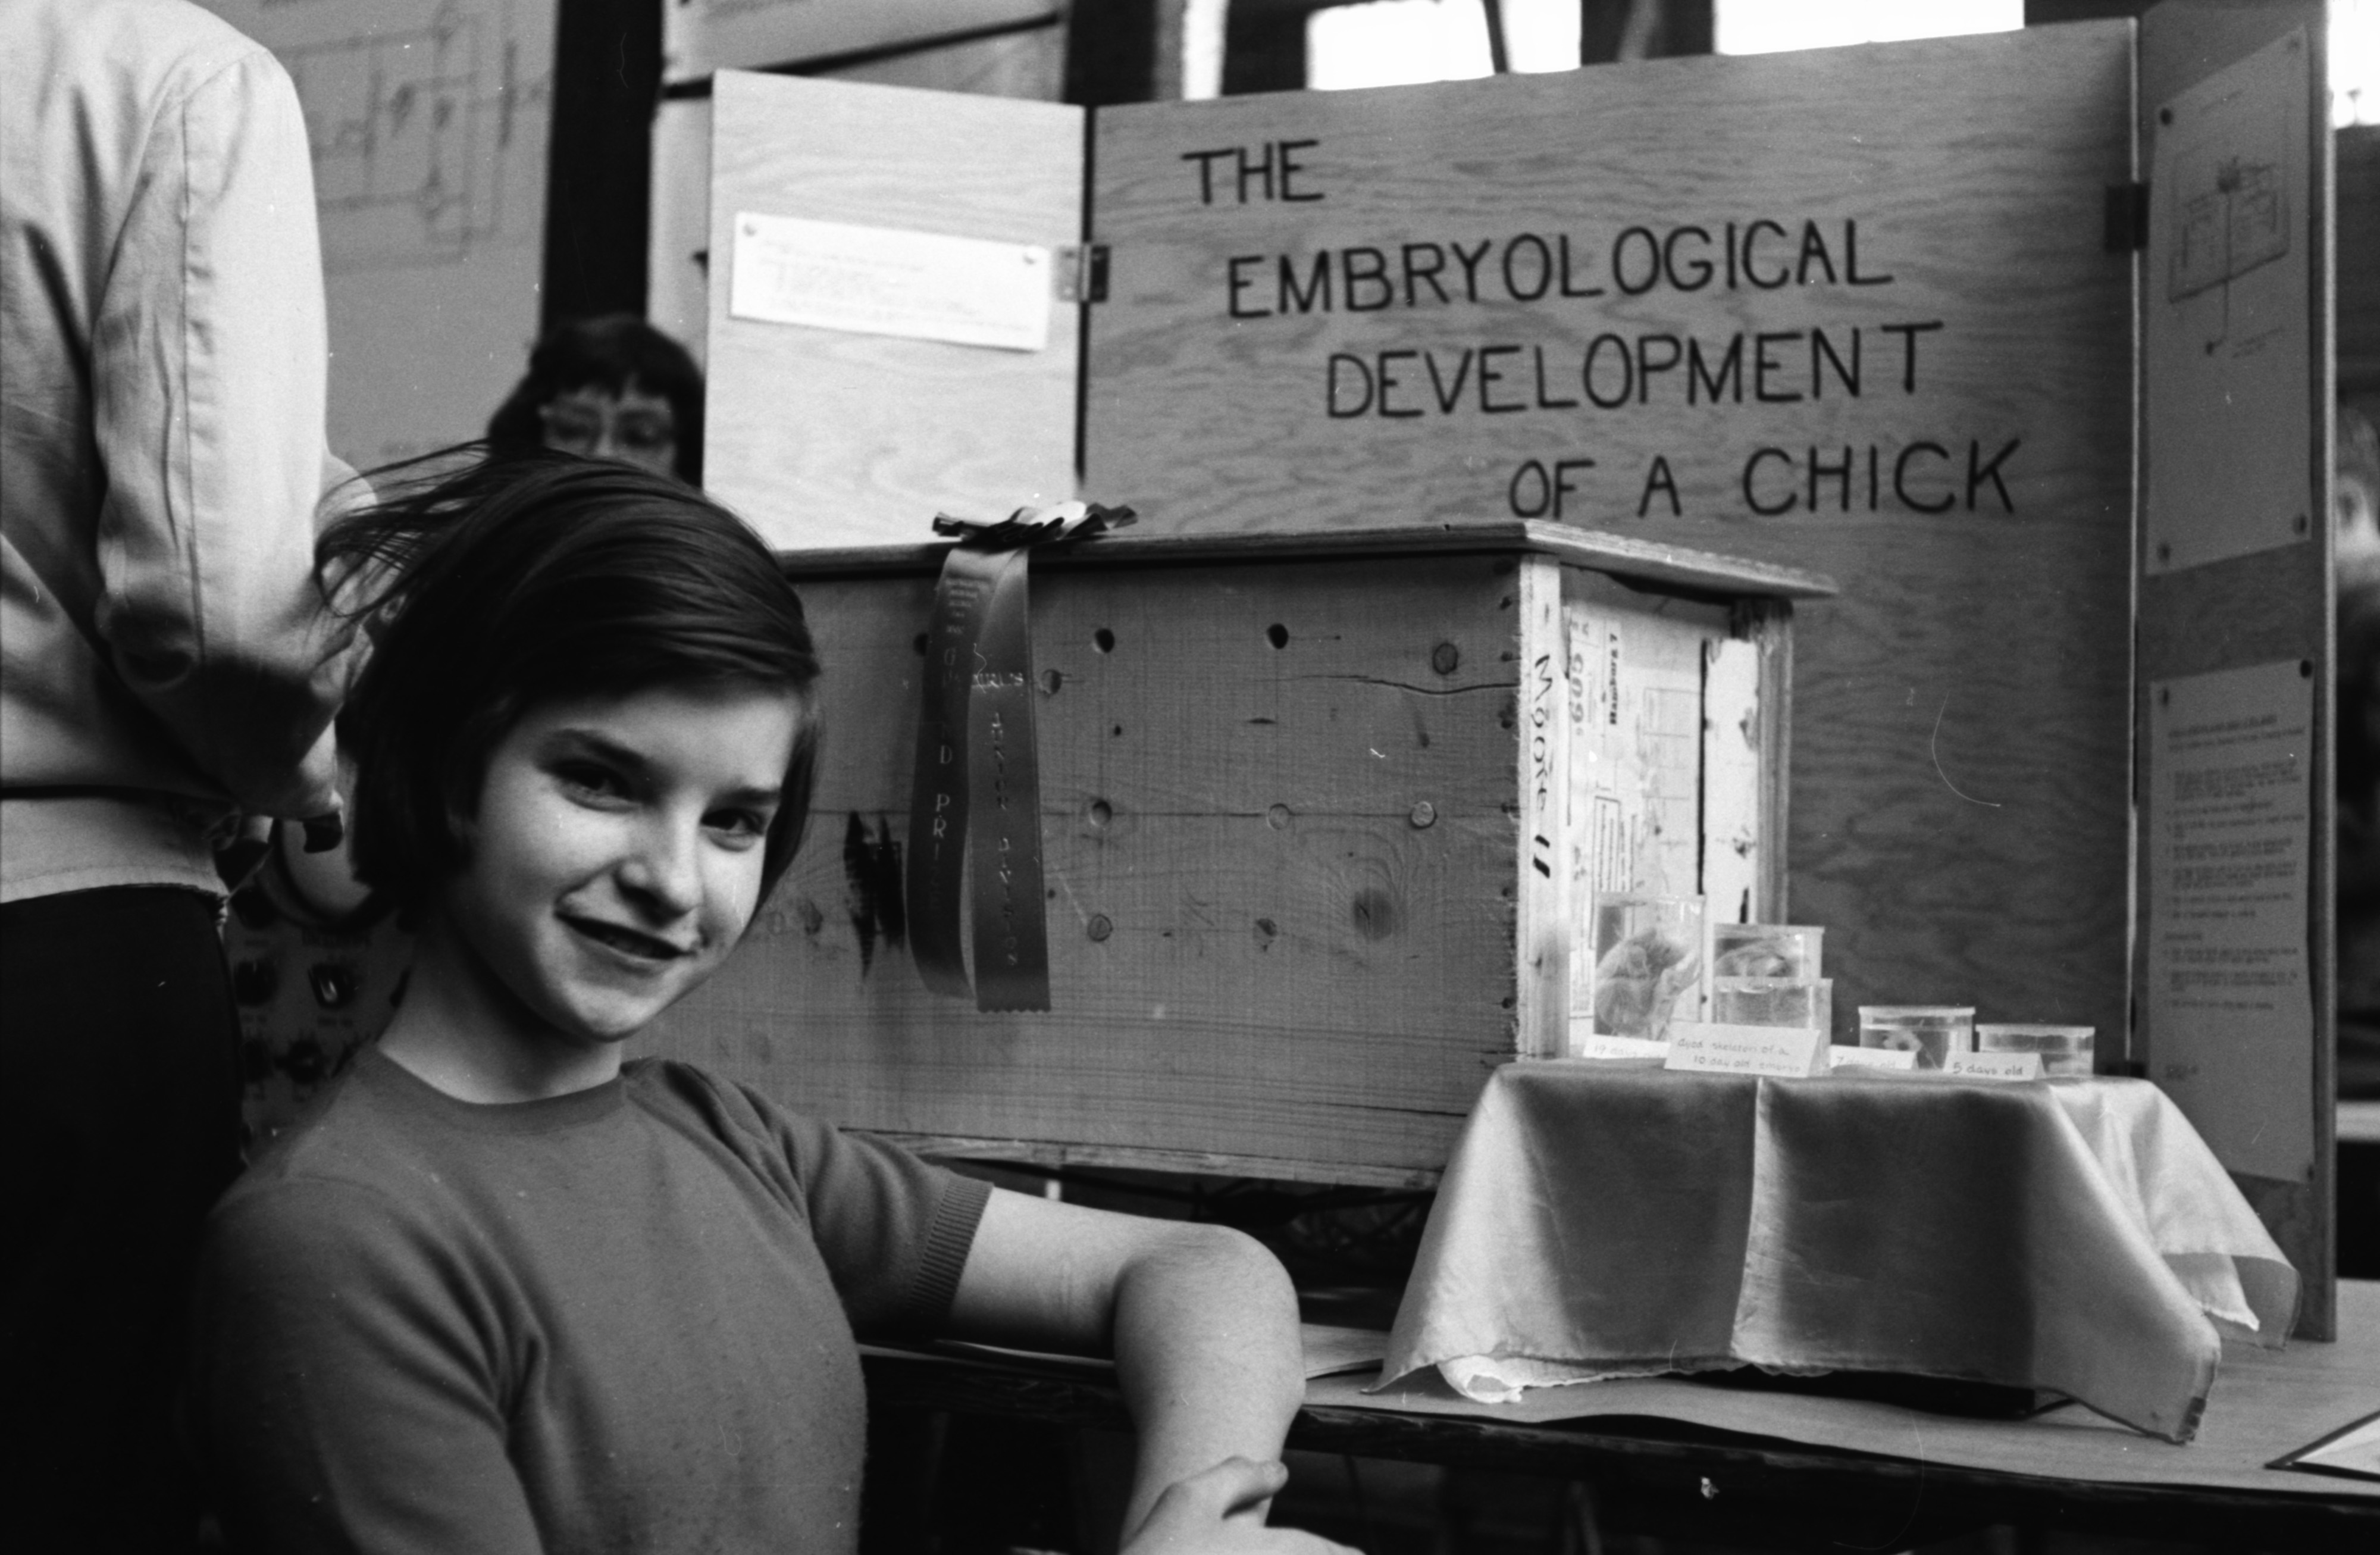 Ellen Moore, of Tappan Junior High School, with her winning entry, April 1960 image